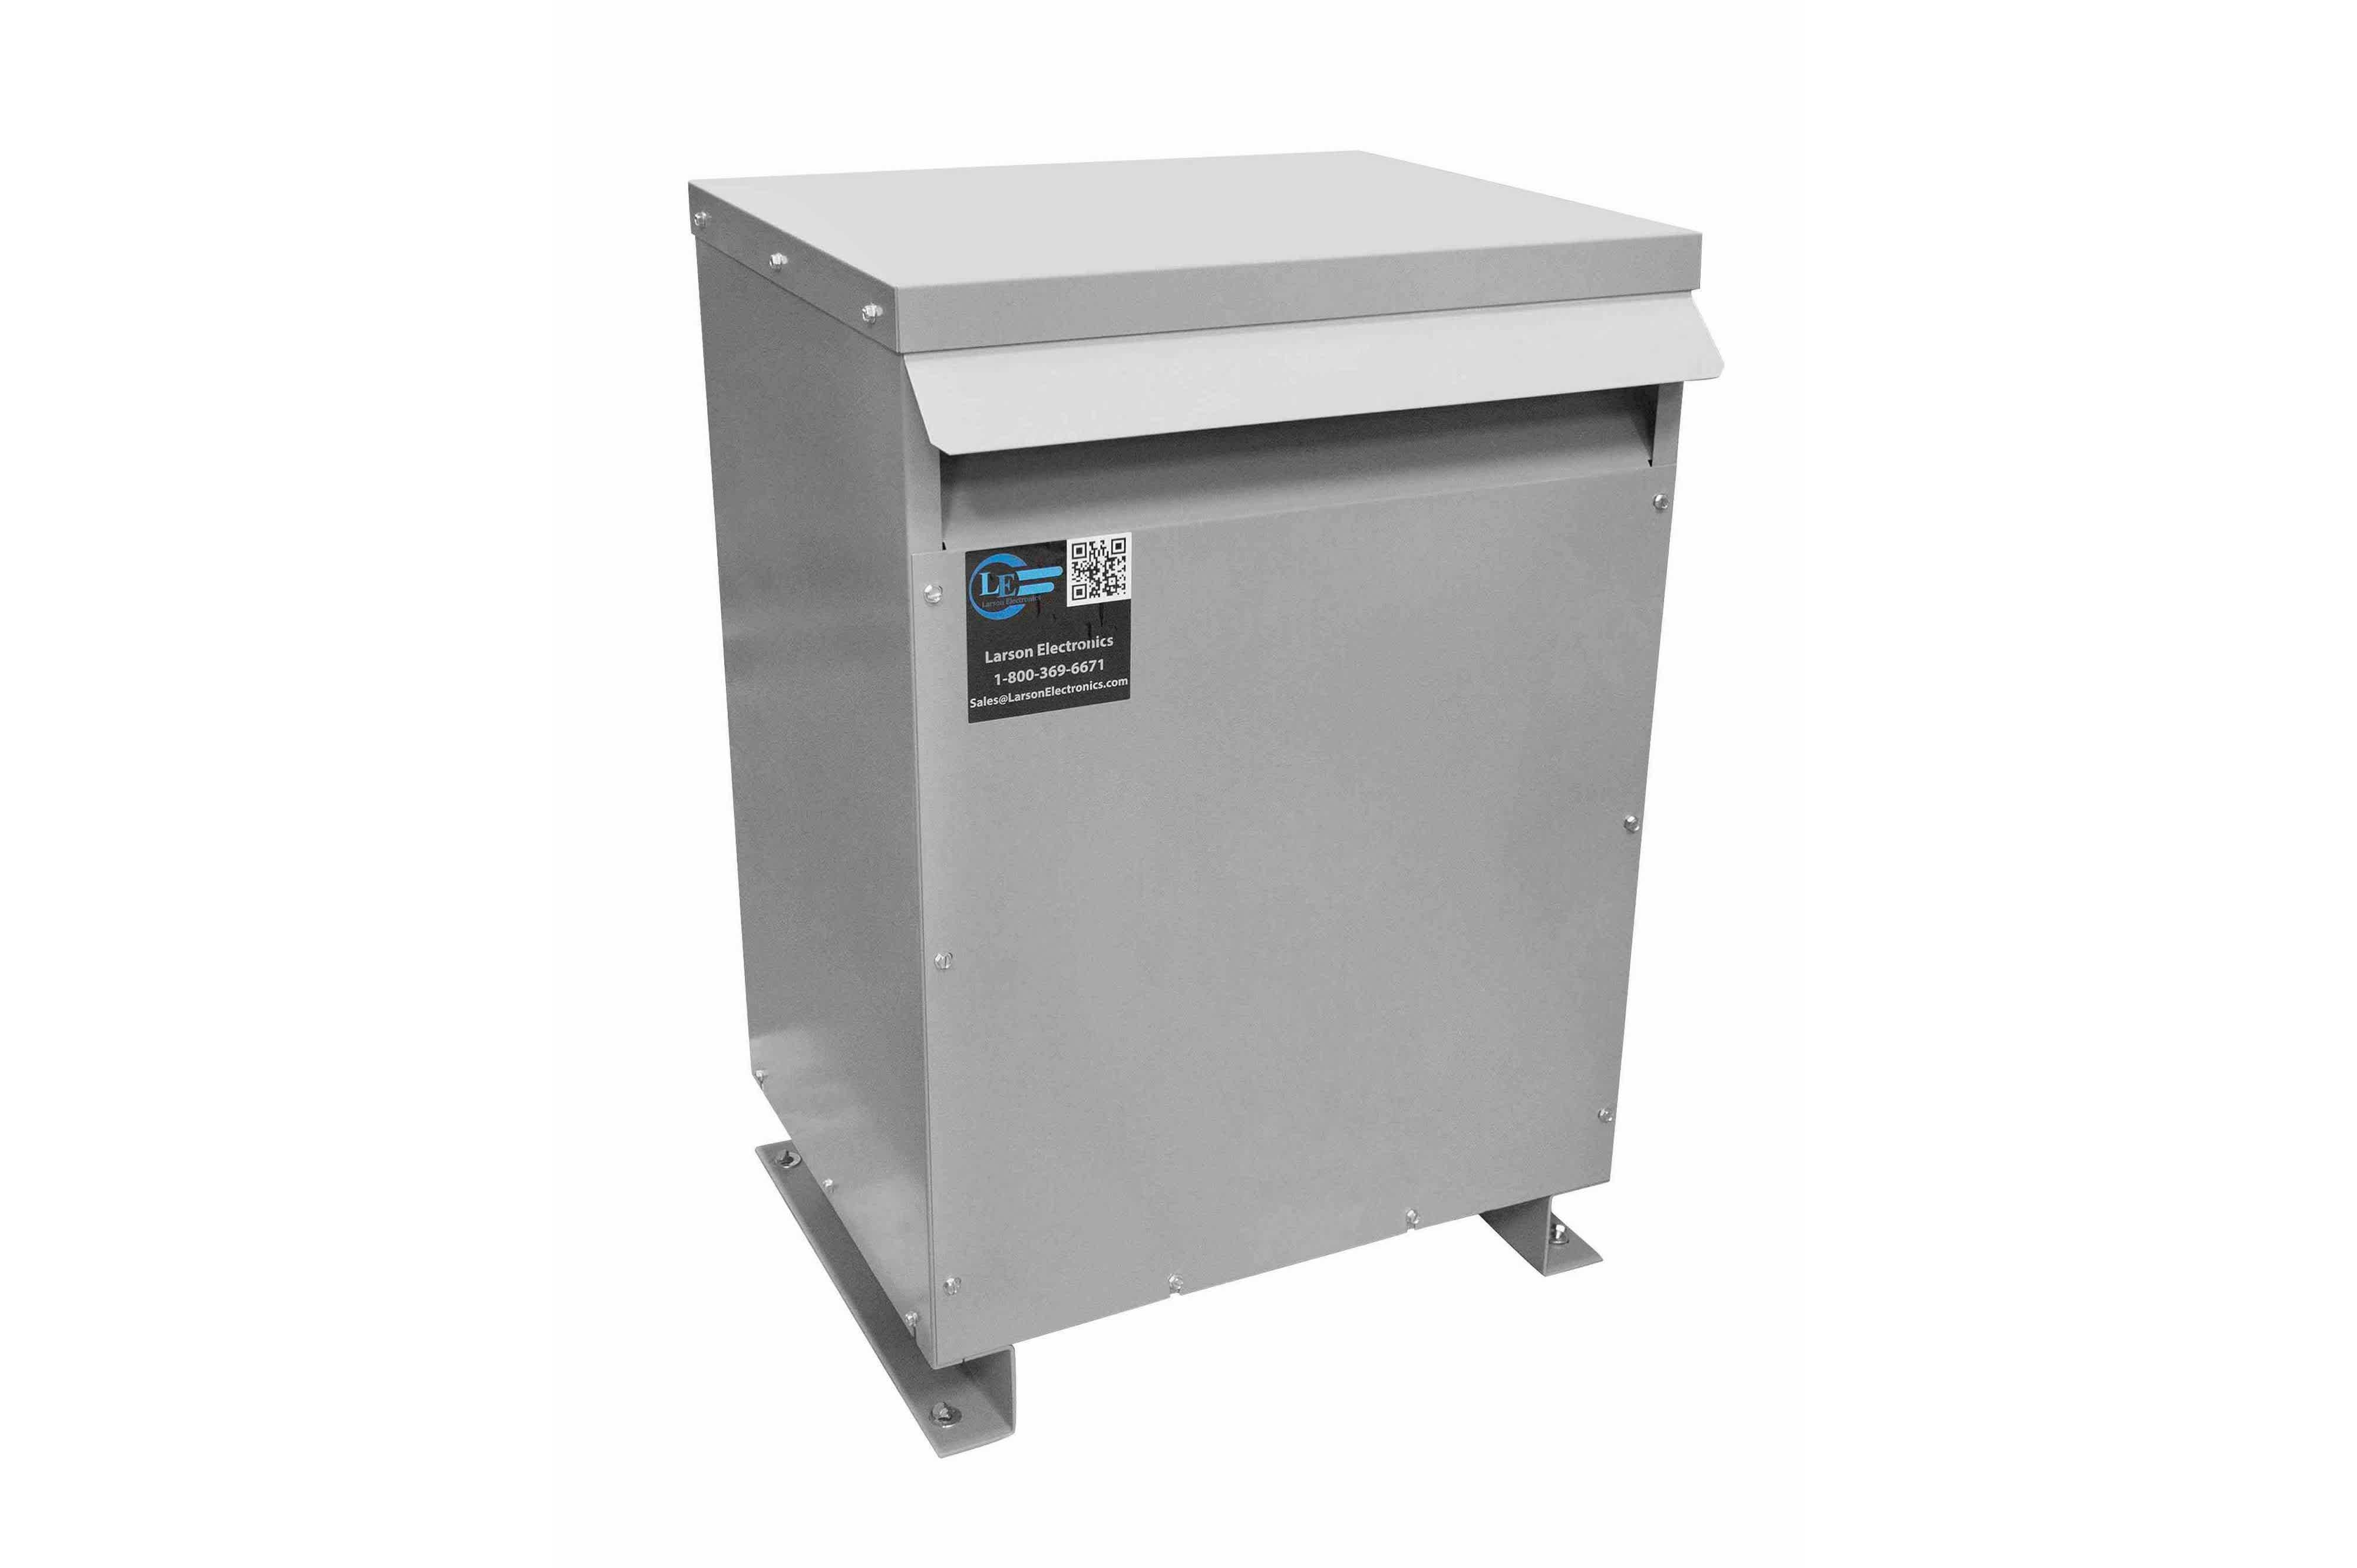 52.5 kVA 3PH Isolation Transformer, 240V Delta Primary, 415V Delta Secondary, N3R, Ventilated, 60 Hz